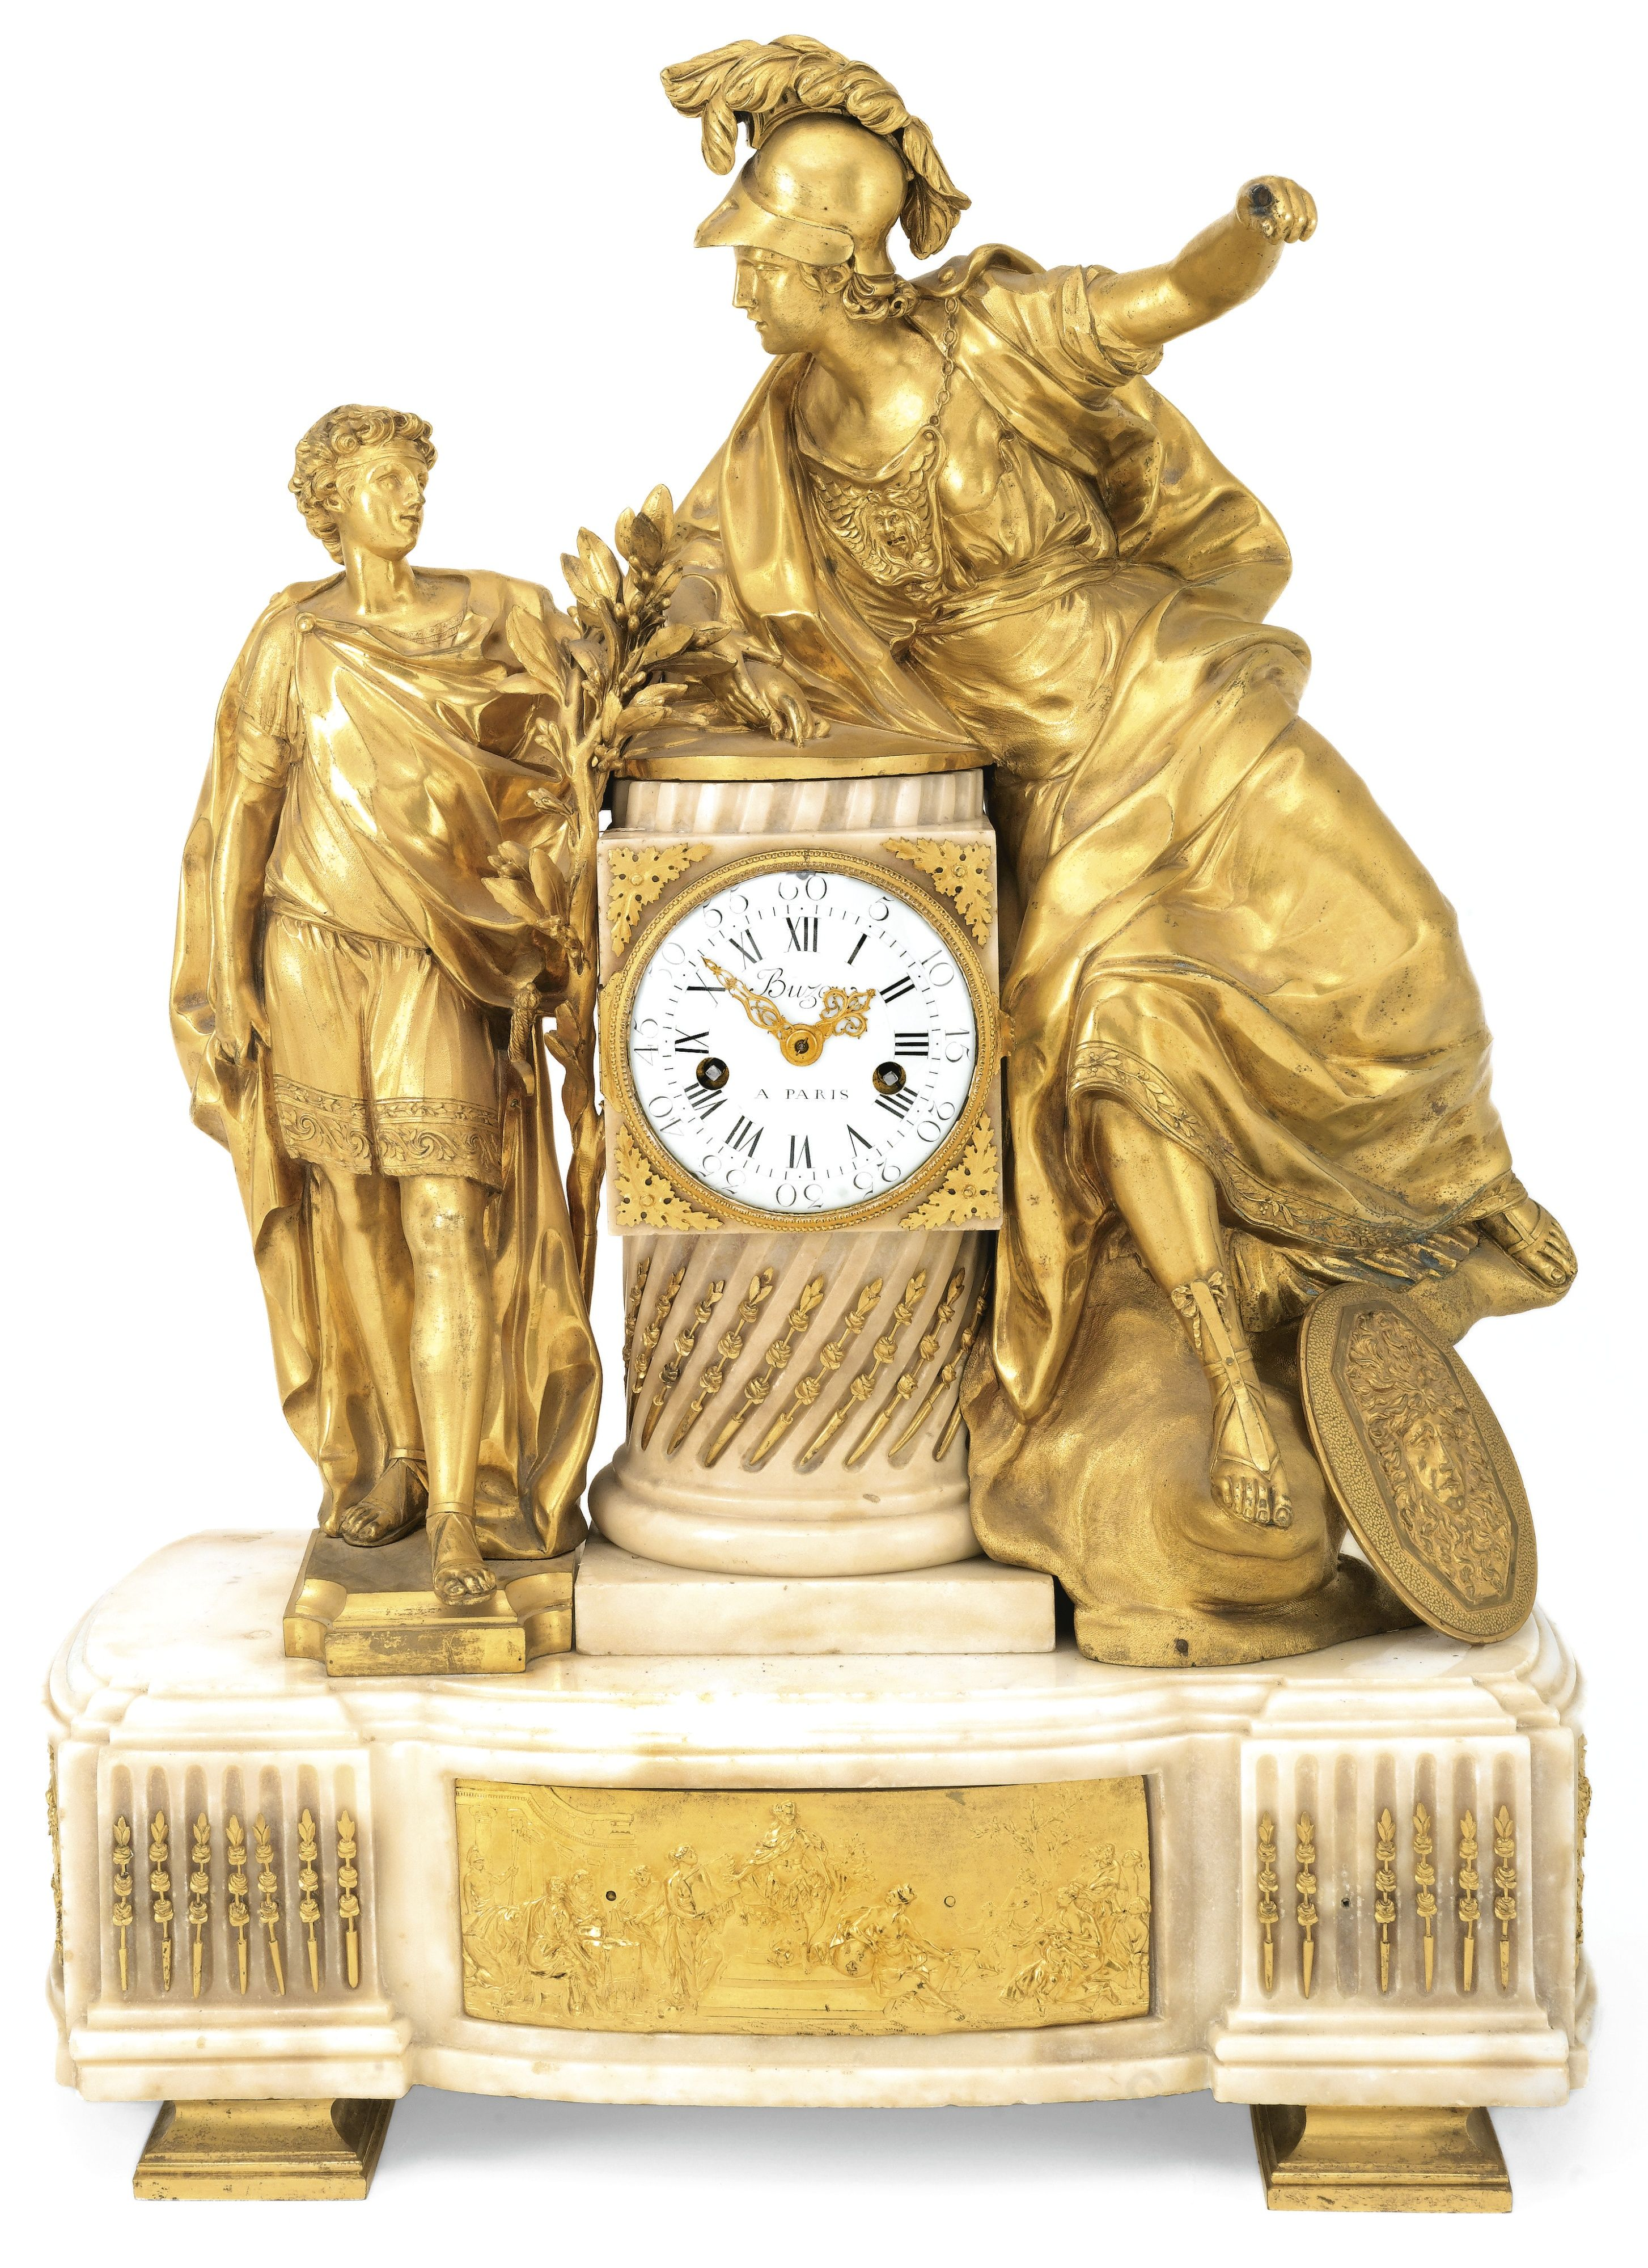 C1775 A Louis Xvi Ormolu And White Marble Mantel Clock Minerva Inspiring A Youth Buzot Antique Wall Clocks French Antique Clocks Antique Pendulum Wall Clock